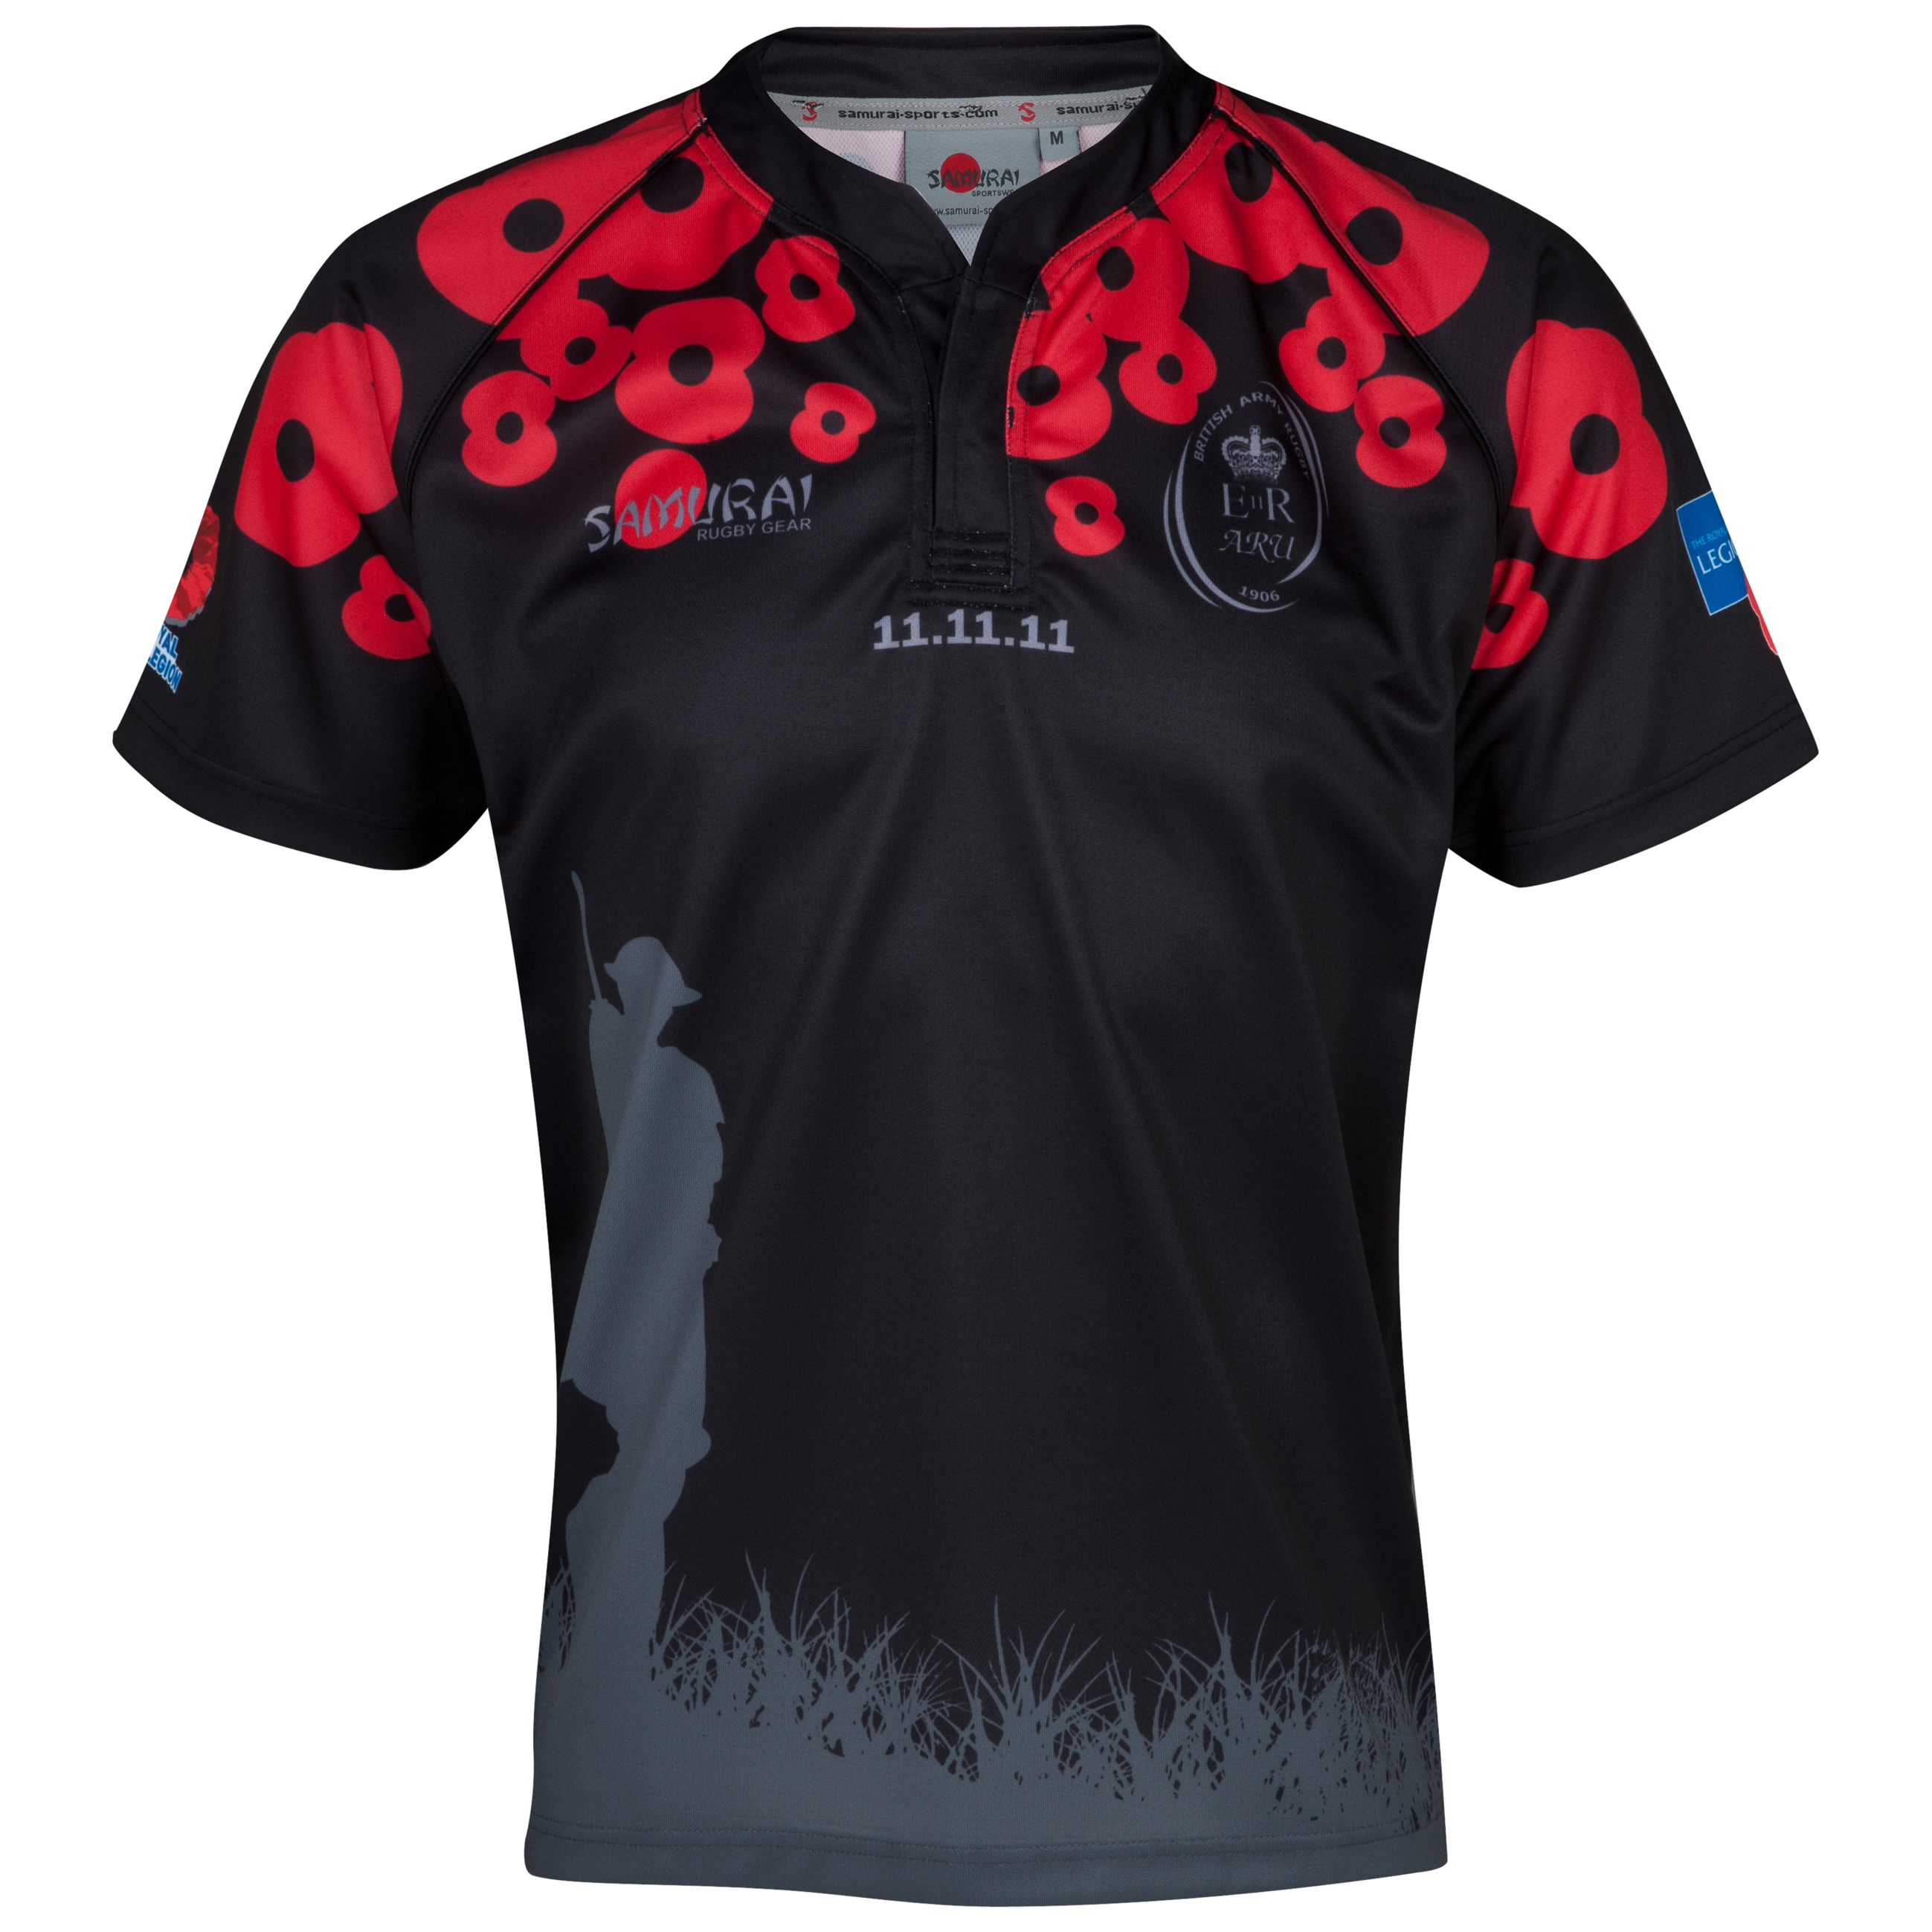 Army Rugby Union Lone Soldier Shirt 2012